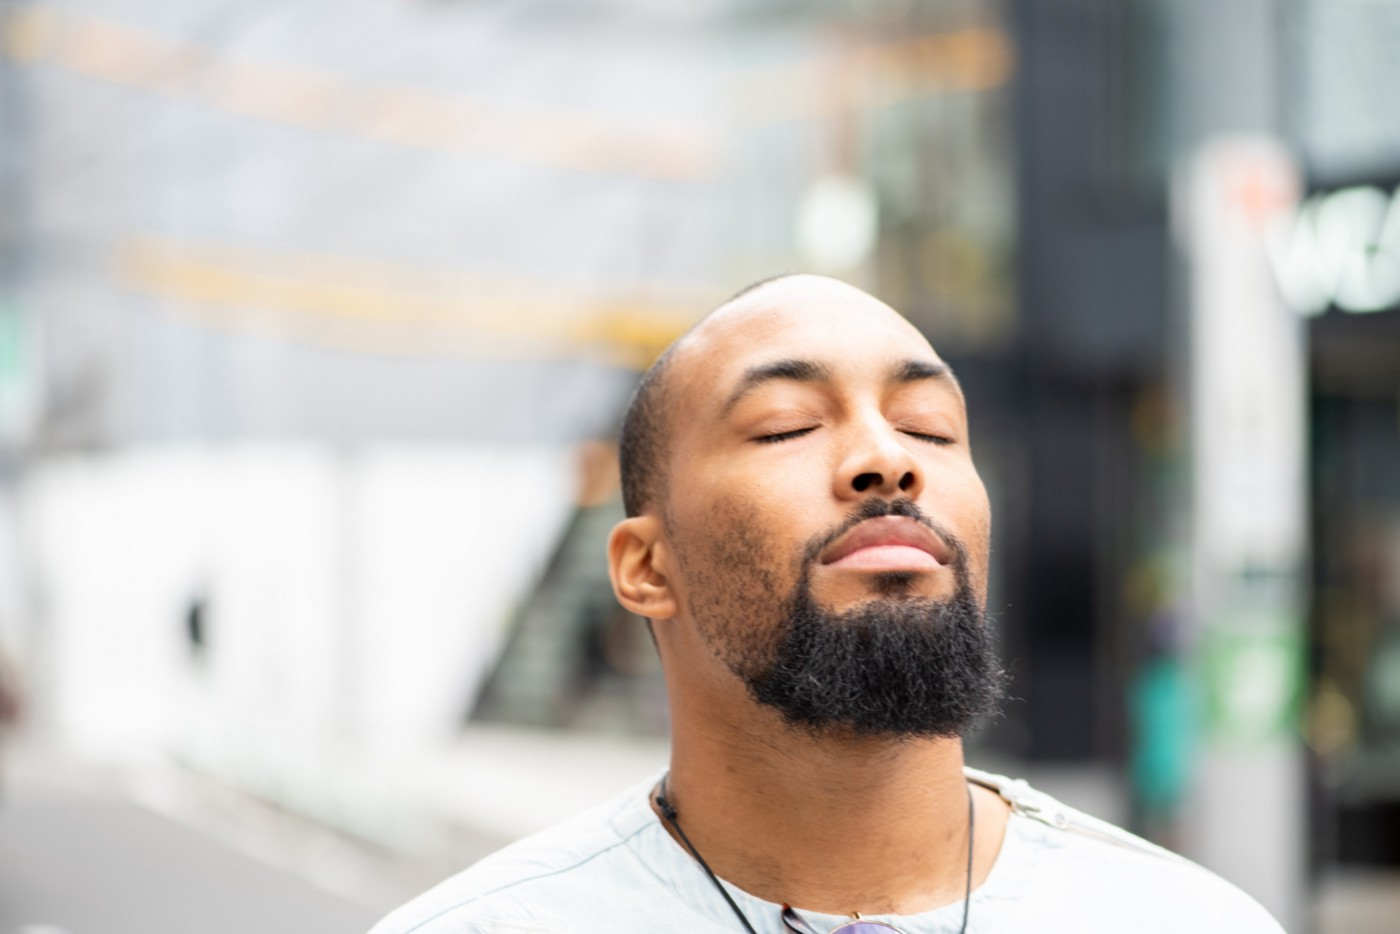 Young Black man closing his eyes with a peaceful expression.